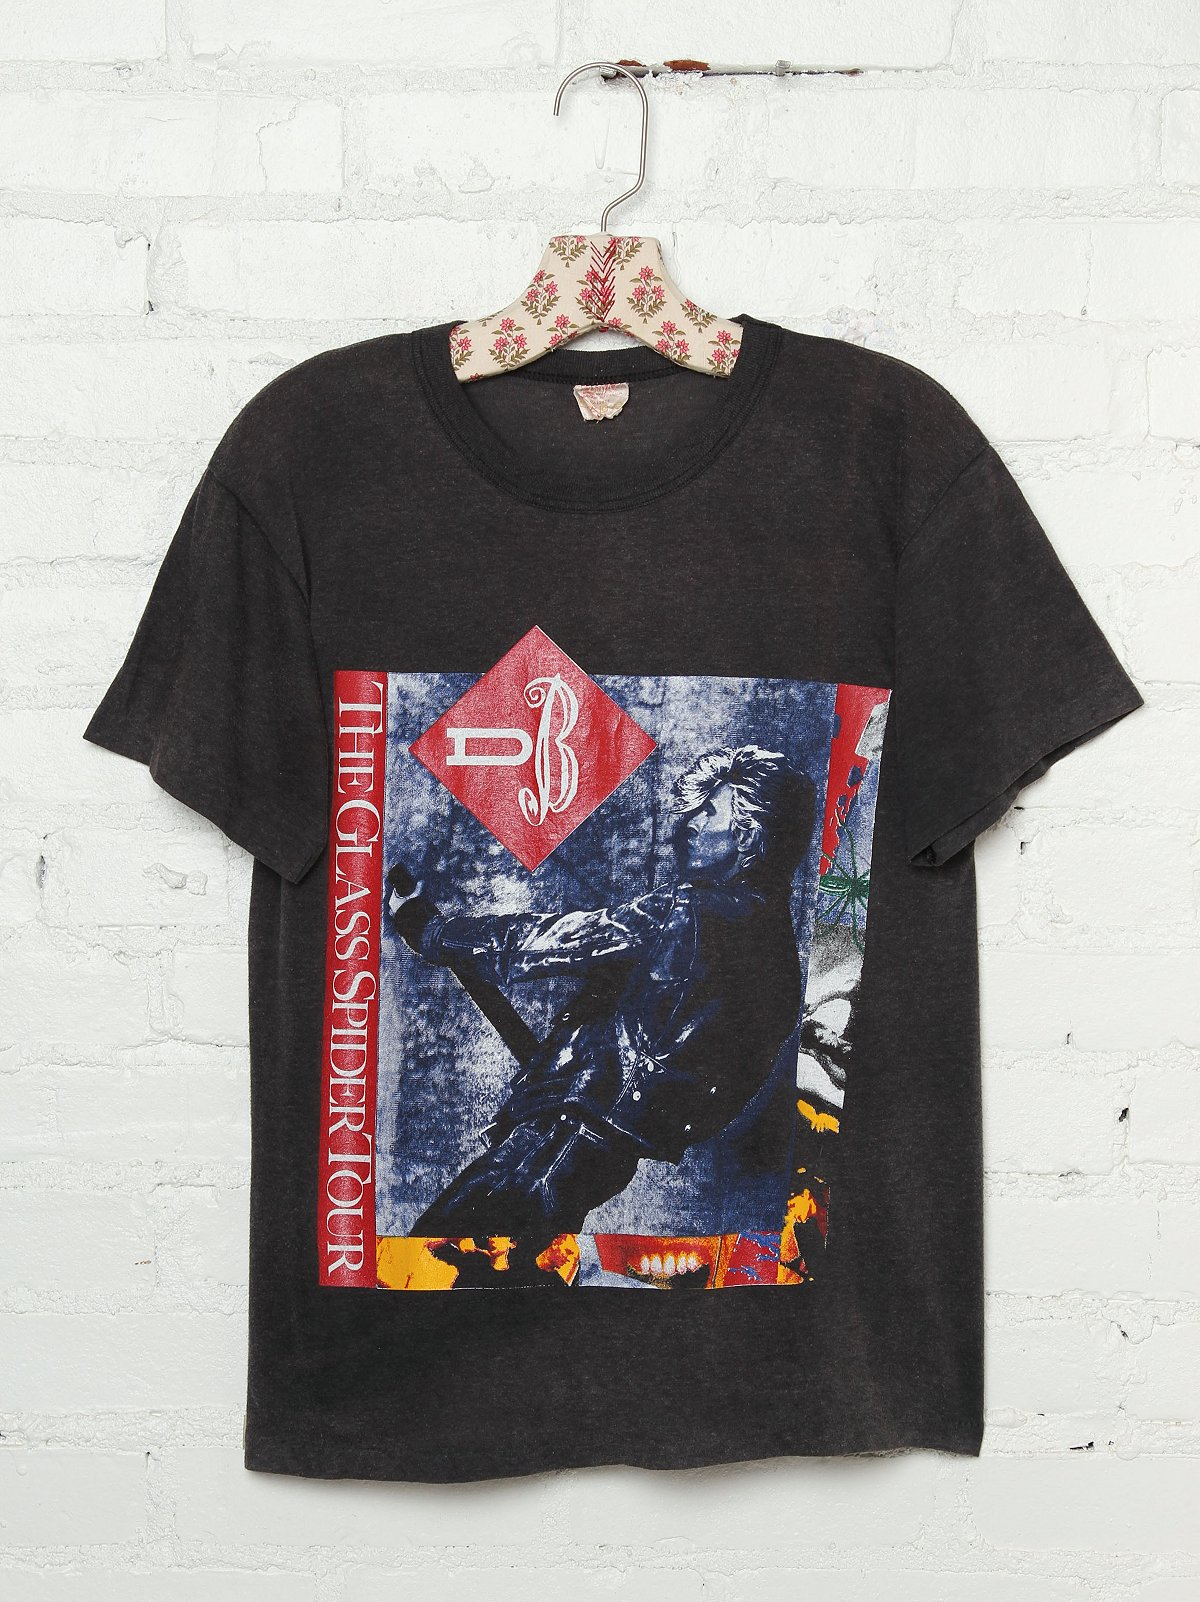 Vintage The Glass Spider 1987 Tee